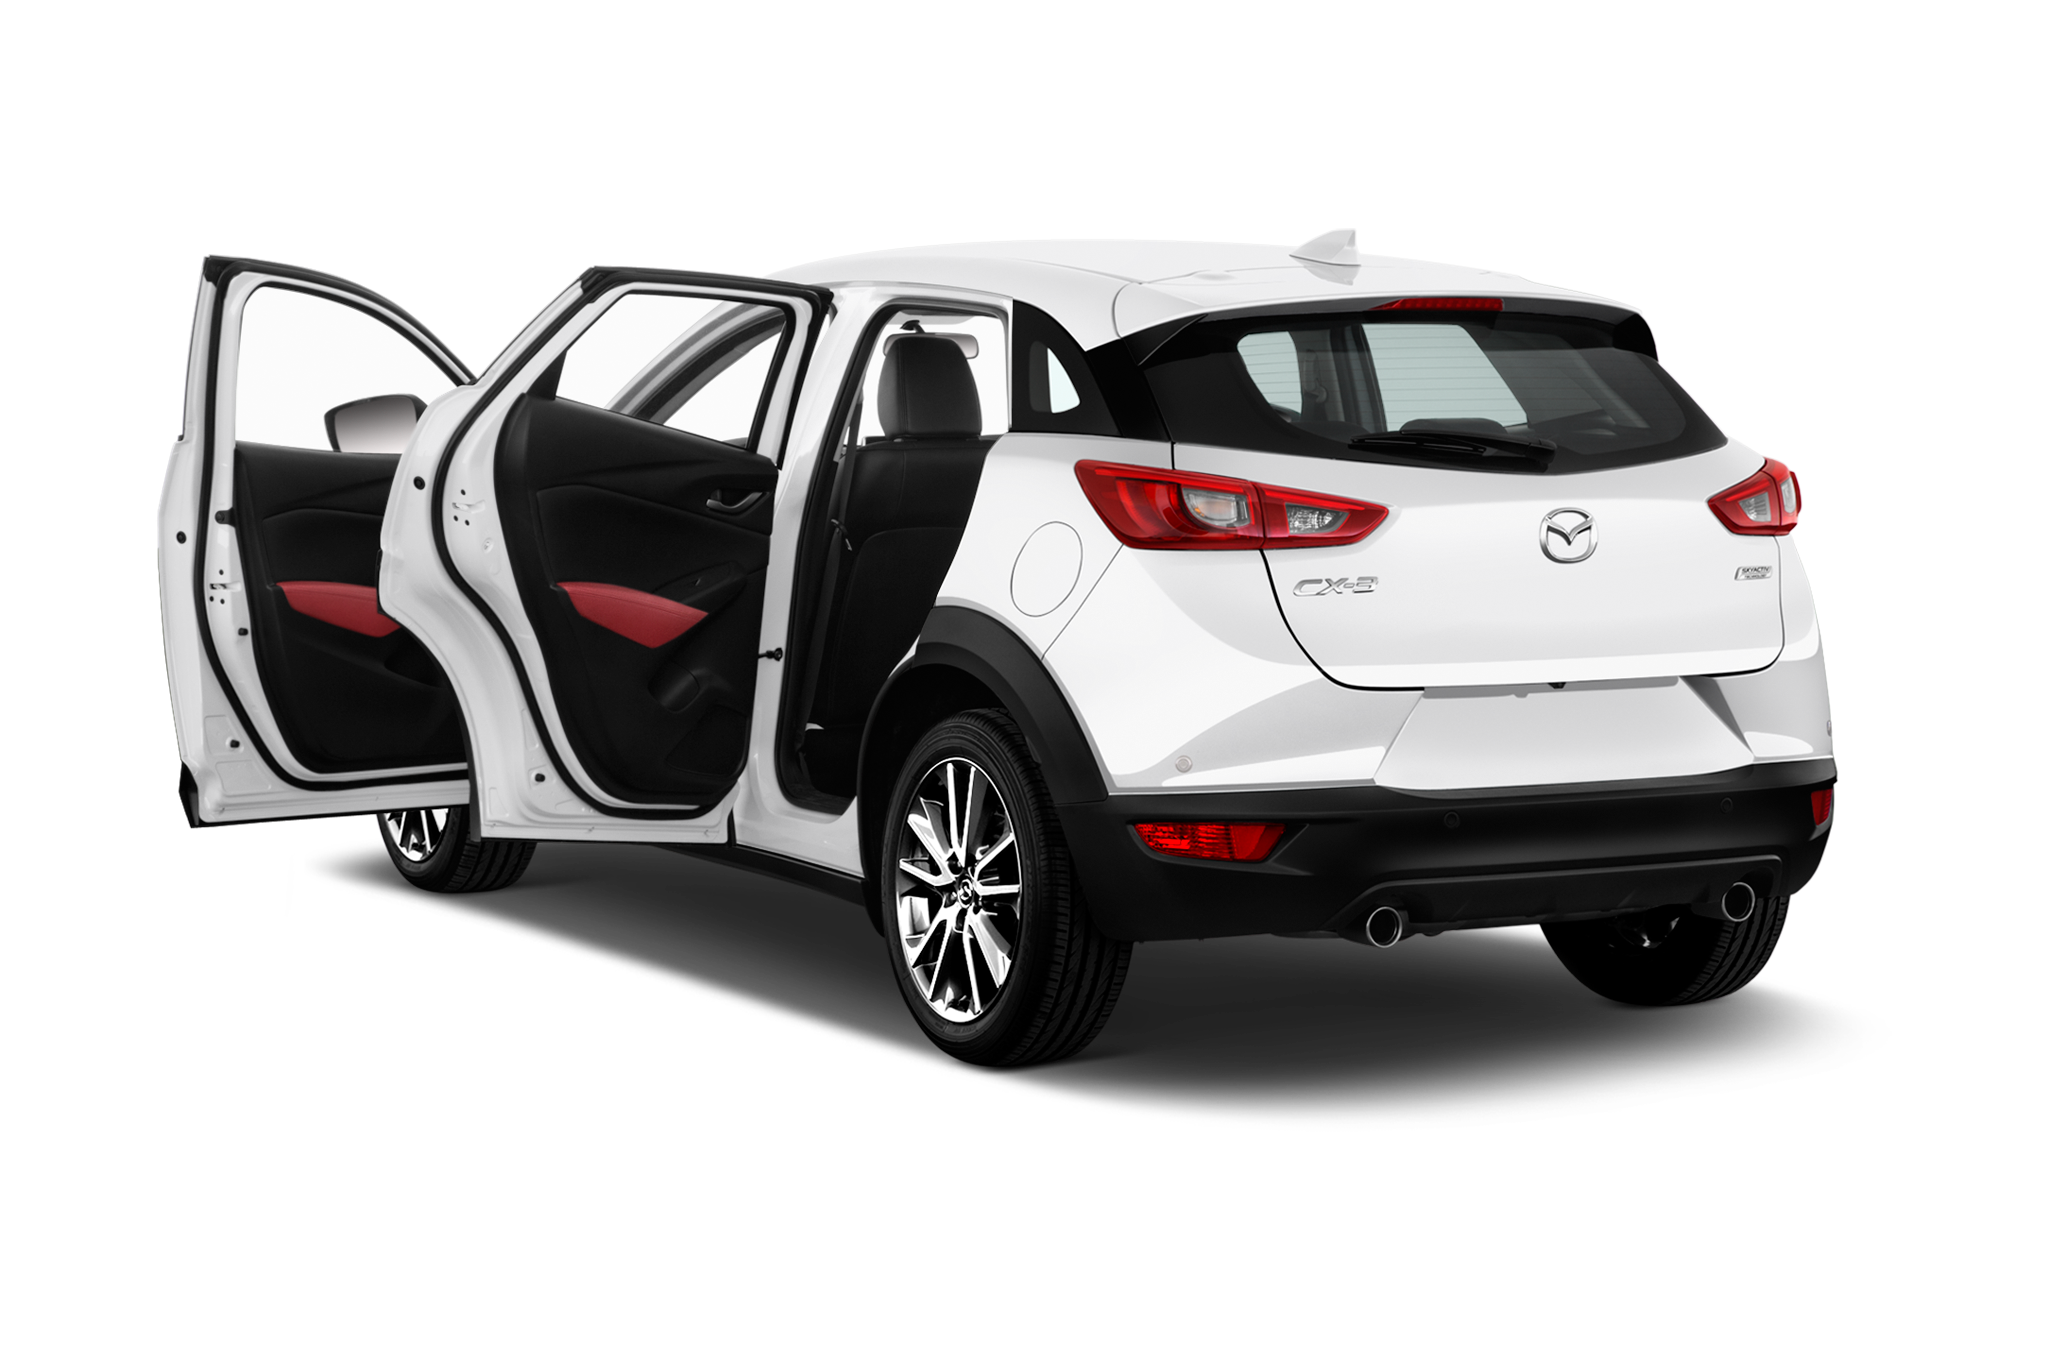 Mazda Mx3 2016 >> 2016 Mazda CX-3 Crossover Earns IIHS Top Safety Pick+